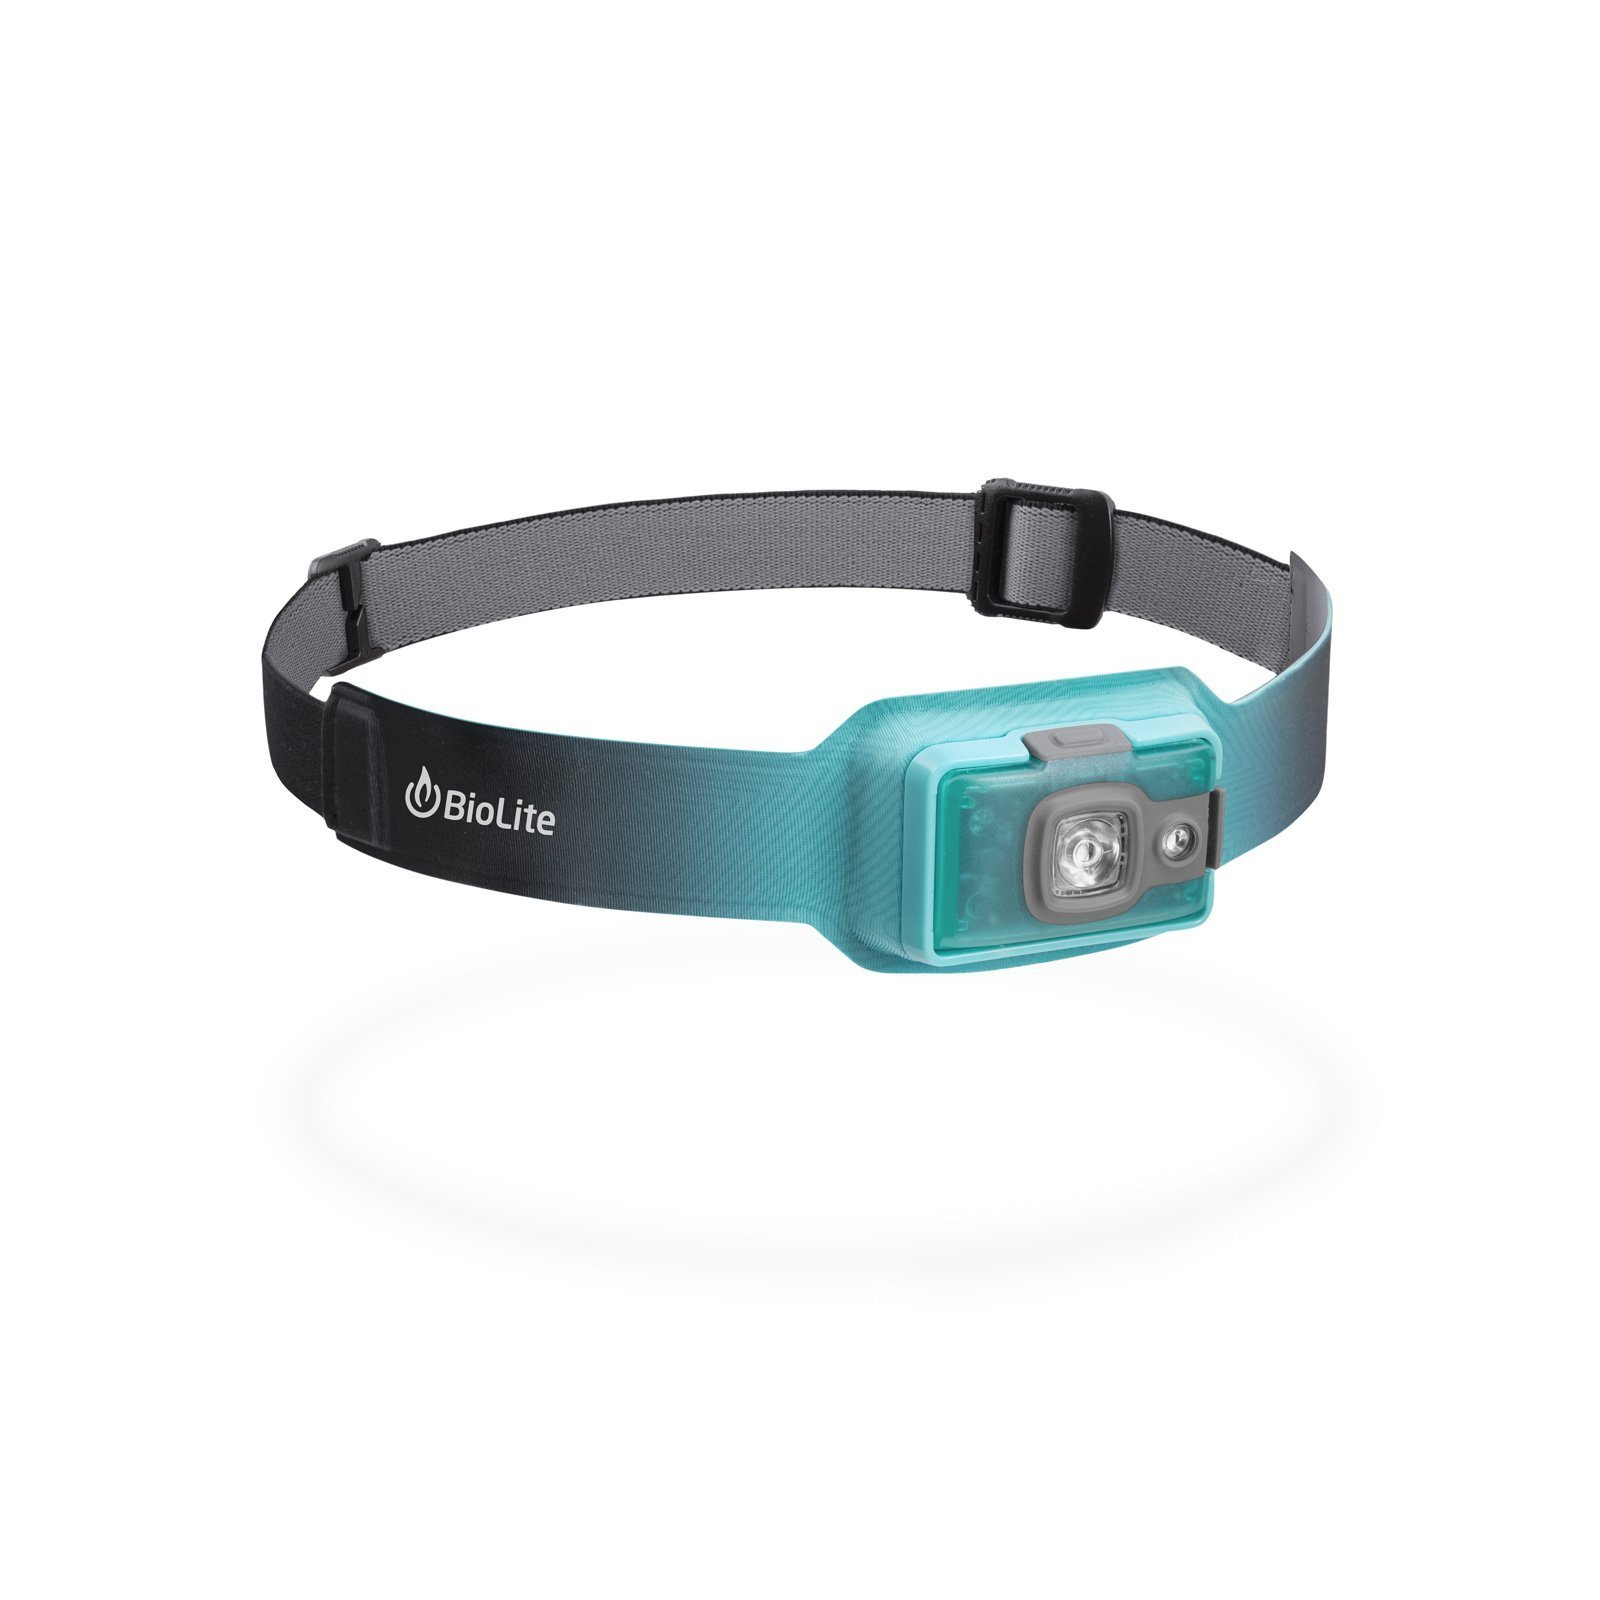 HeadLamp200_teal.jpg